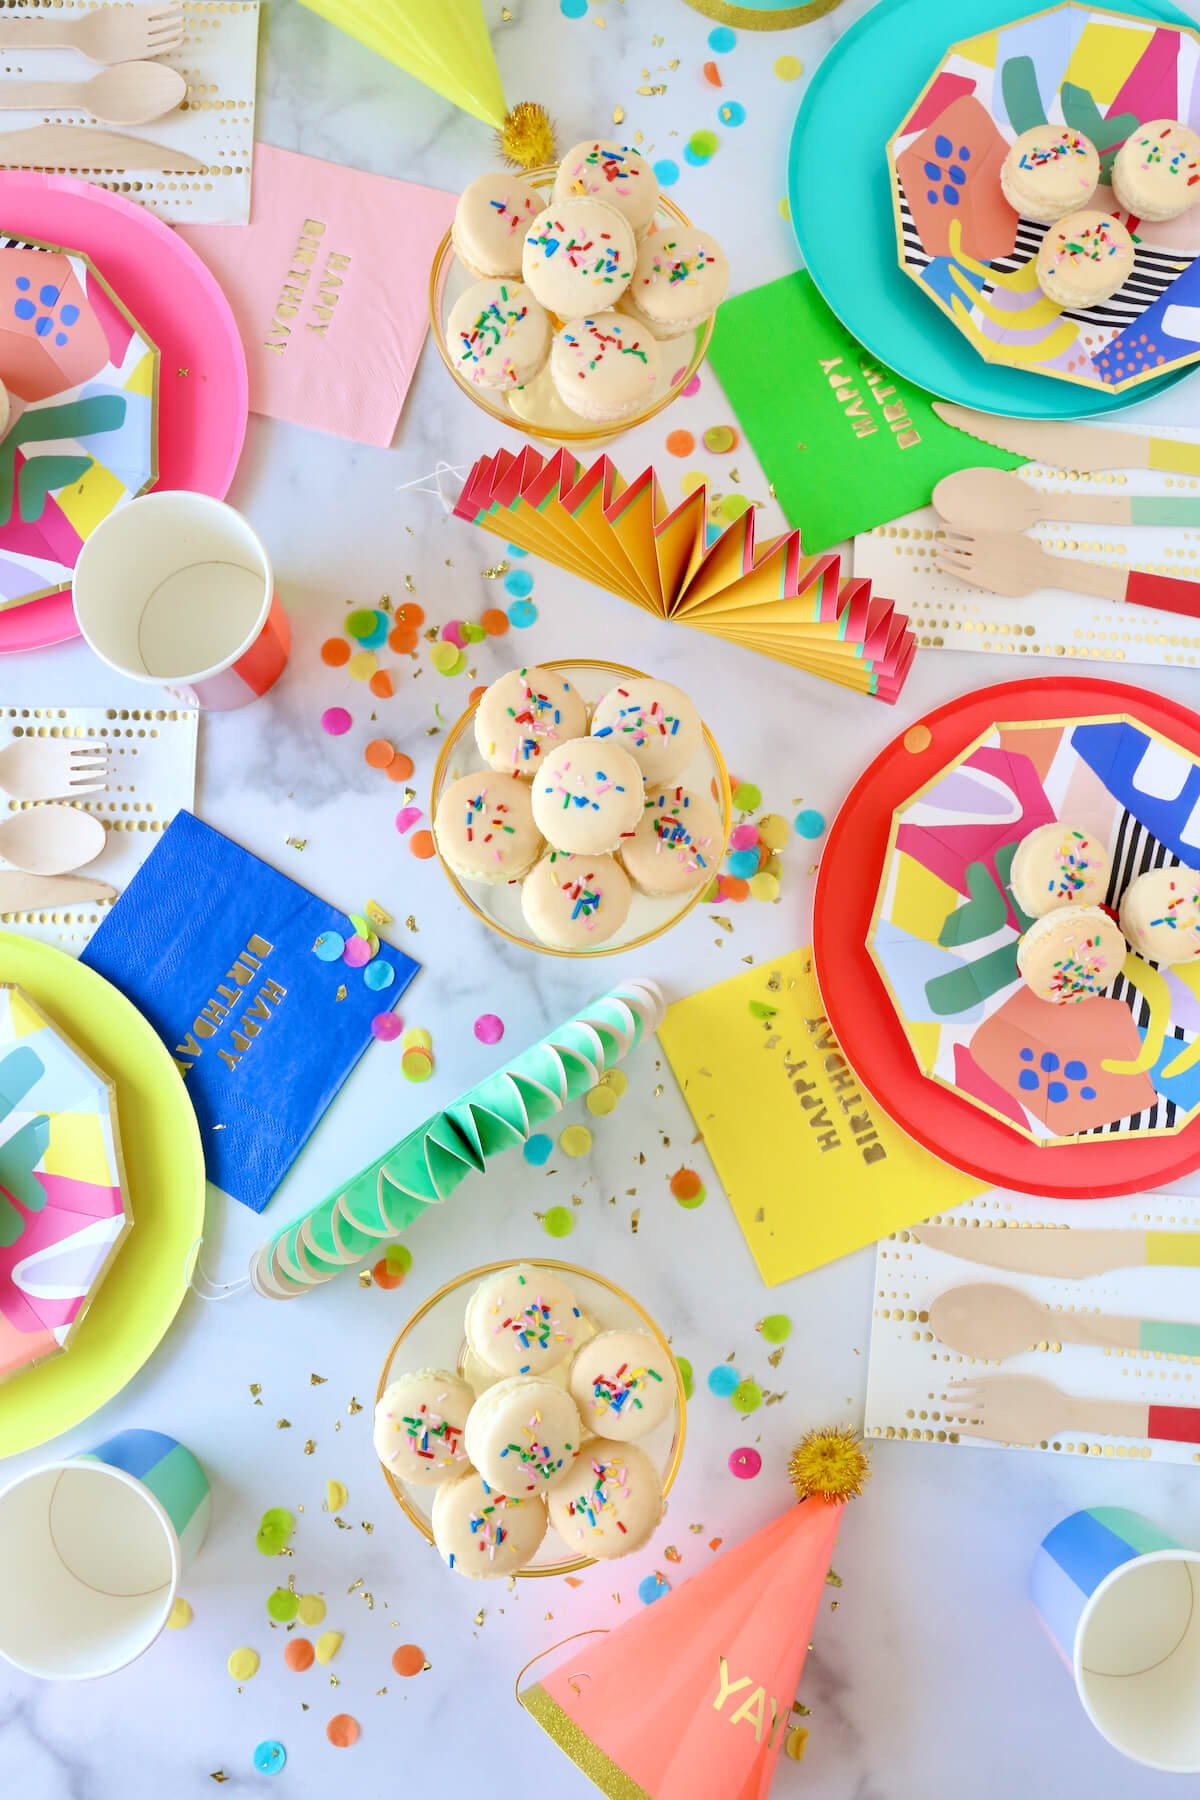 a colorful table full of paper plates, napkins, party hats, confetti and french macarons.